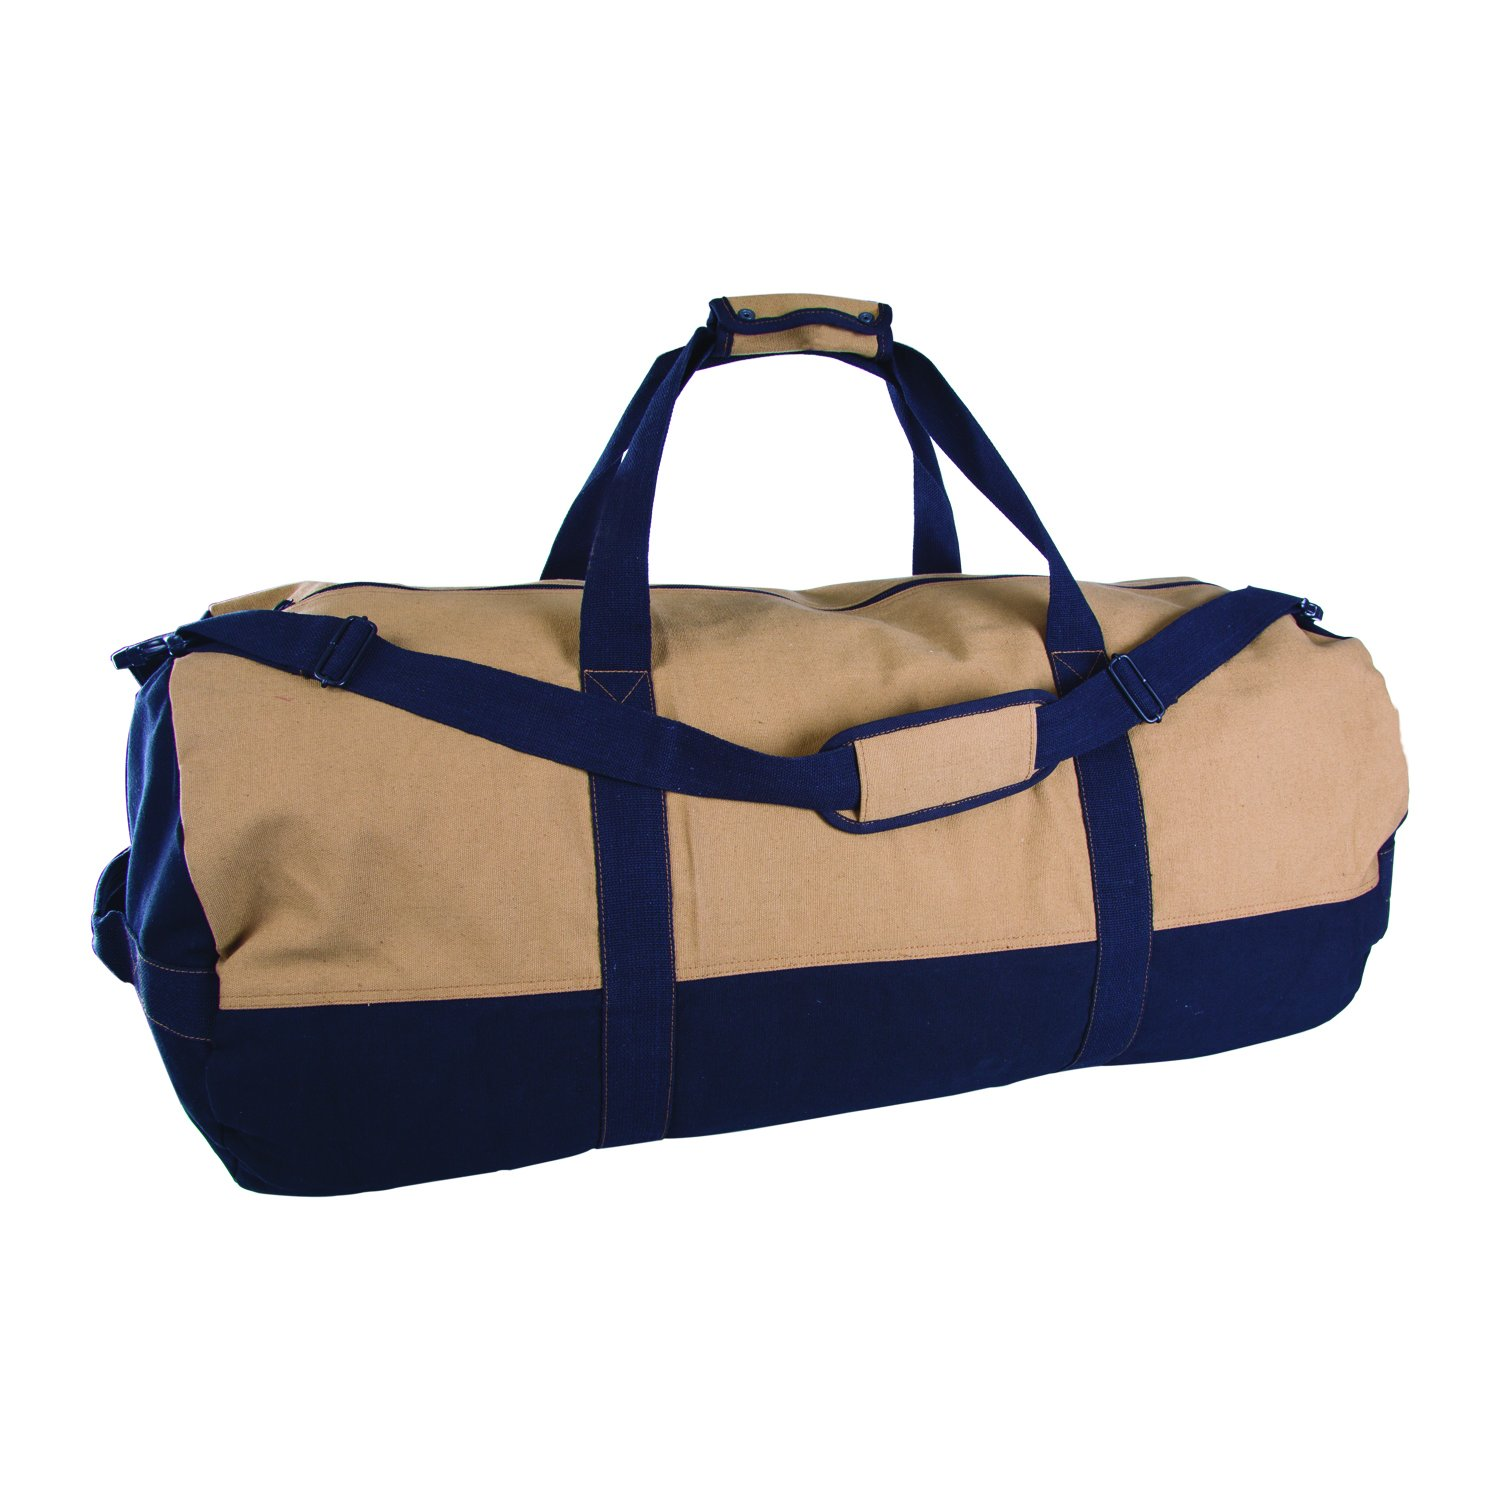 "Duffle Bag with Zipper, 2-Tone, 18"" x 36"""